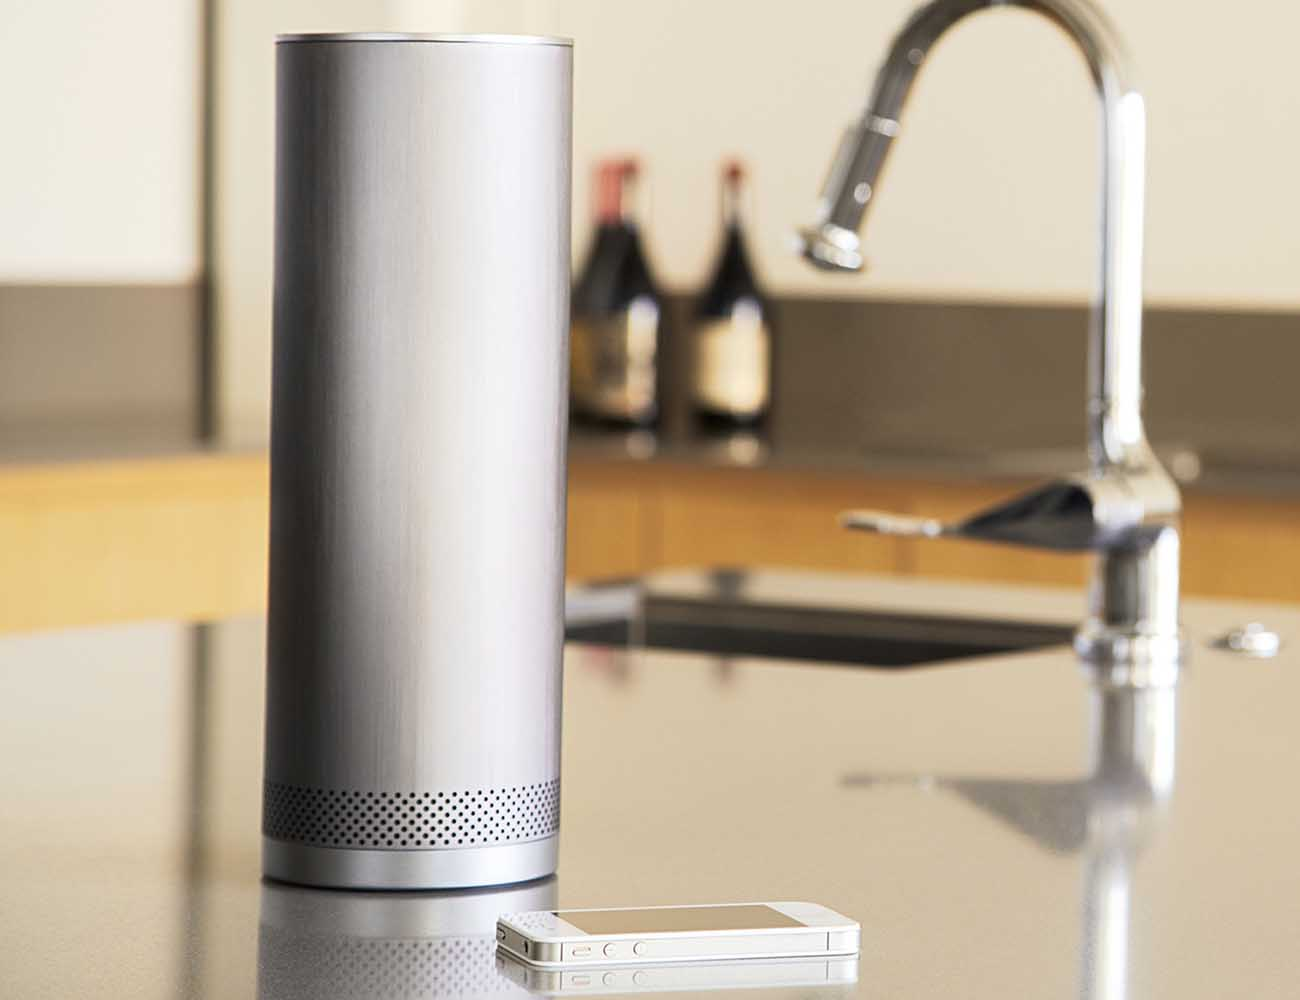 Pillar+Bluetooth+Speaker+By+Stell%C3%A9+Audio+%26%238211%3B+360-degree+Sound+And+15-Hour+Battery+Life